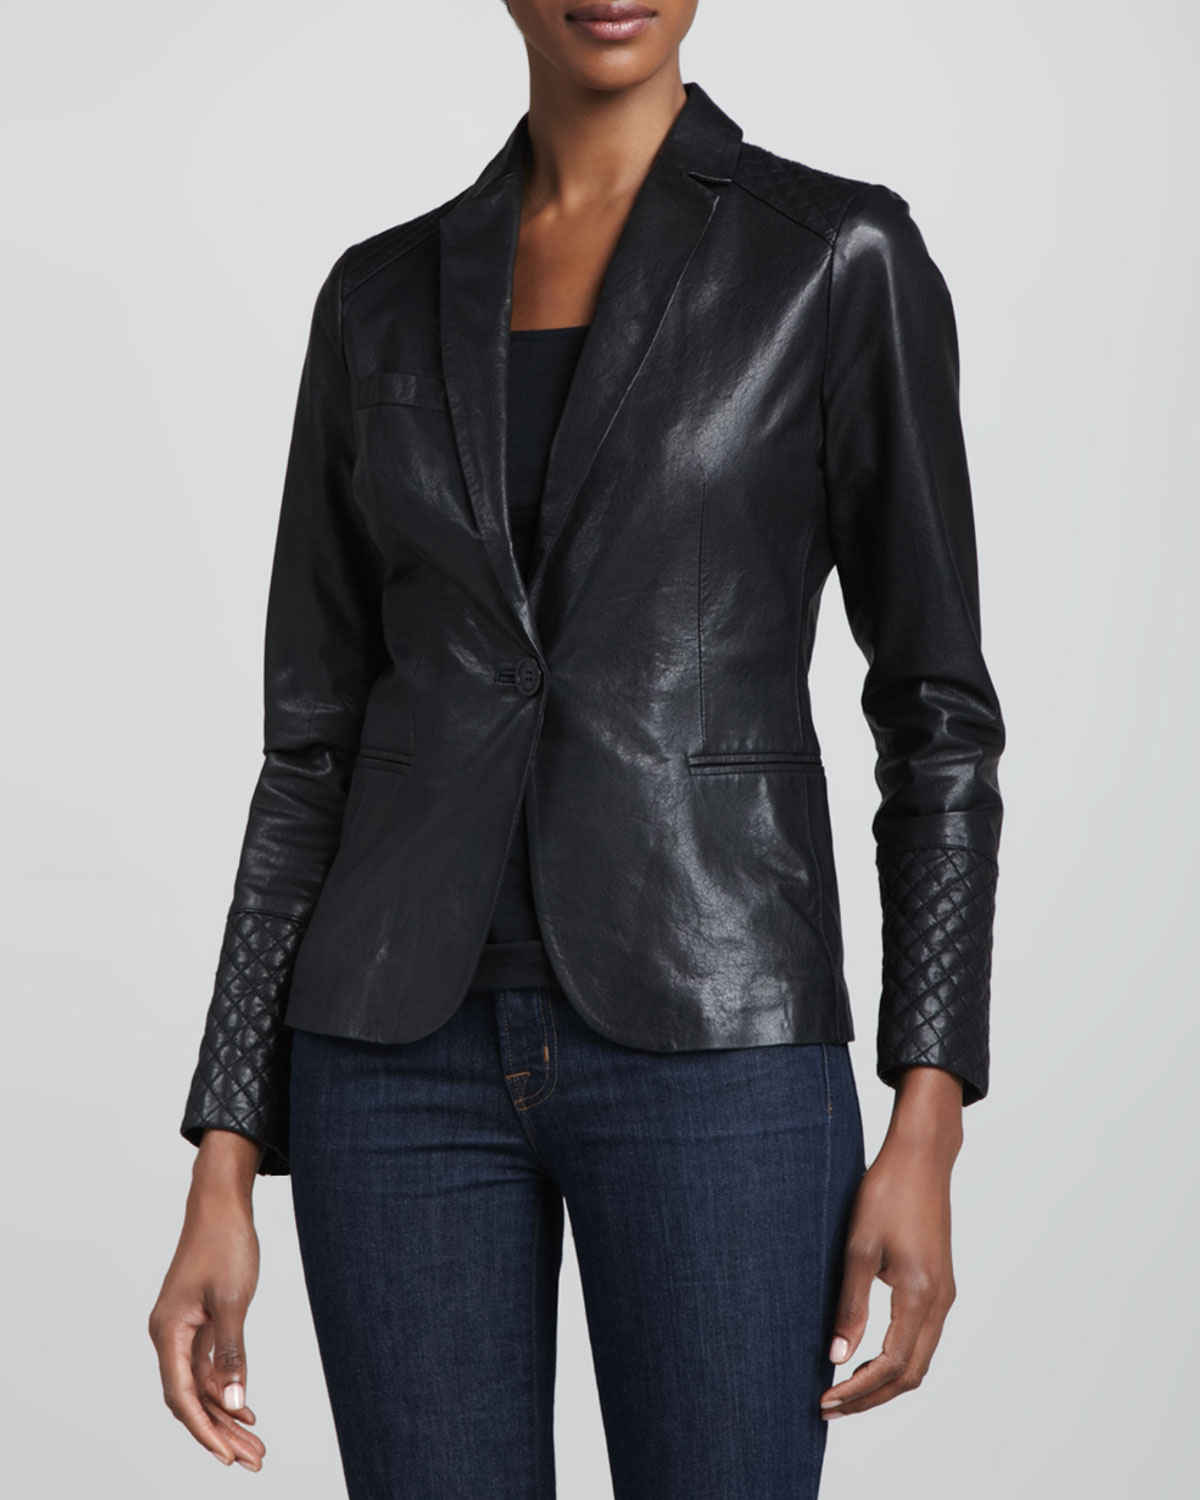 Neiman Marcus   One-Button Leather Blazer, $295